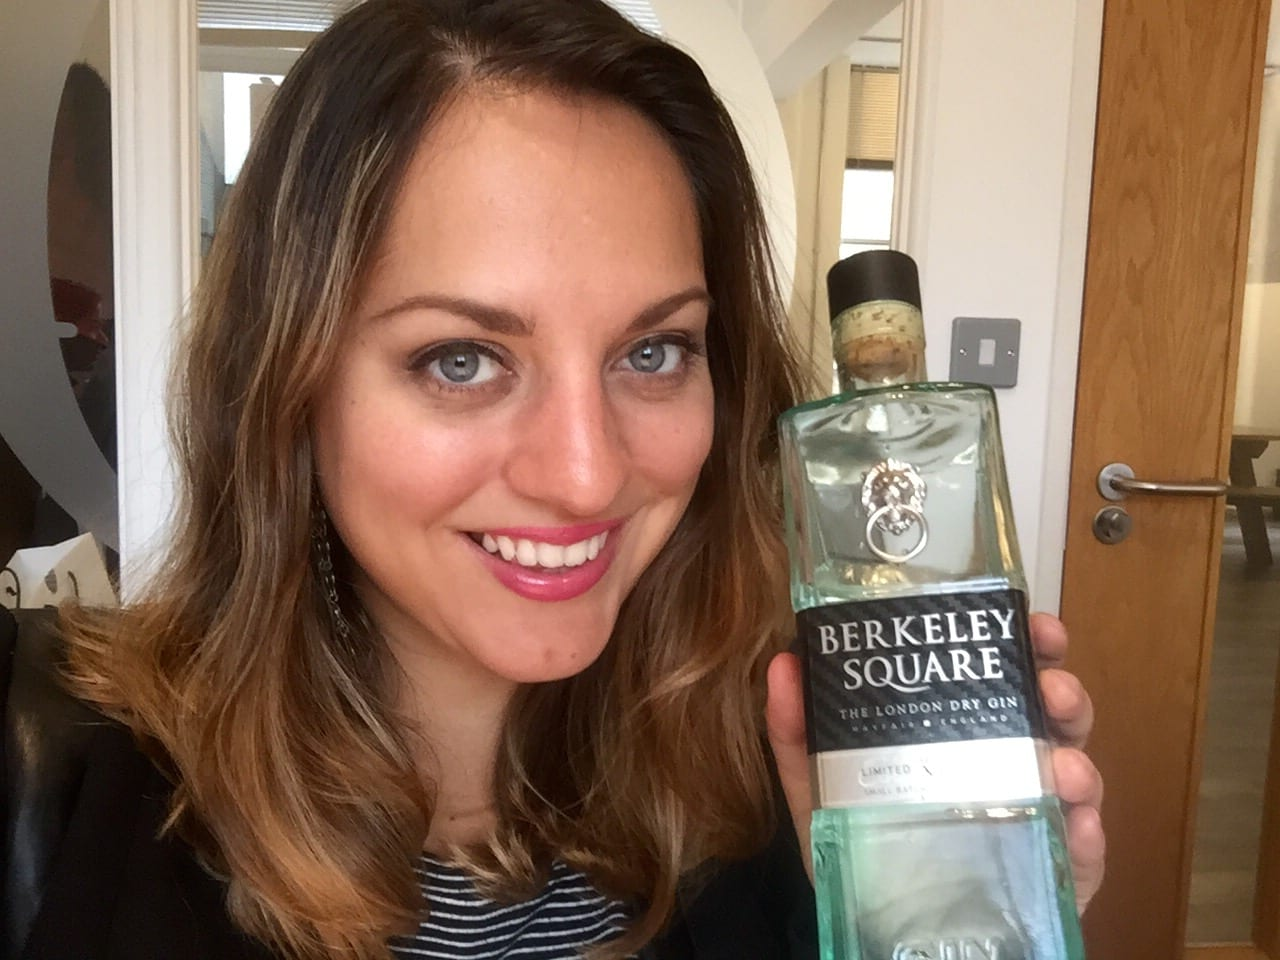 Kate and Berkeley Square Gin